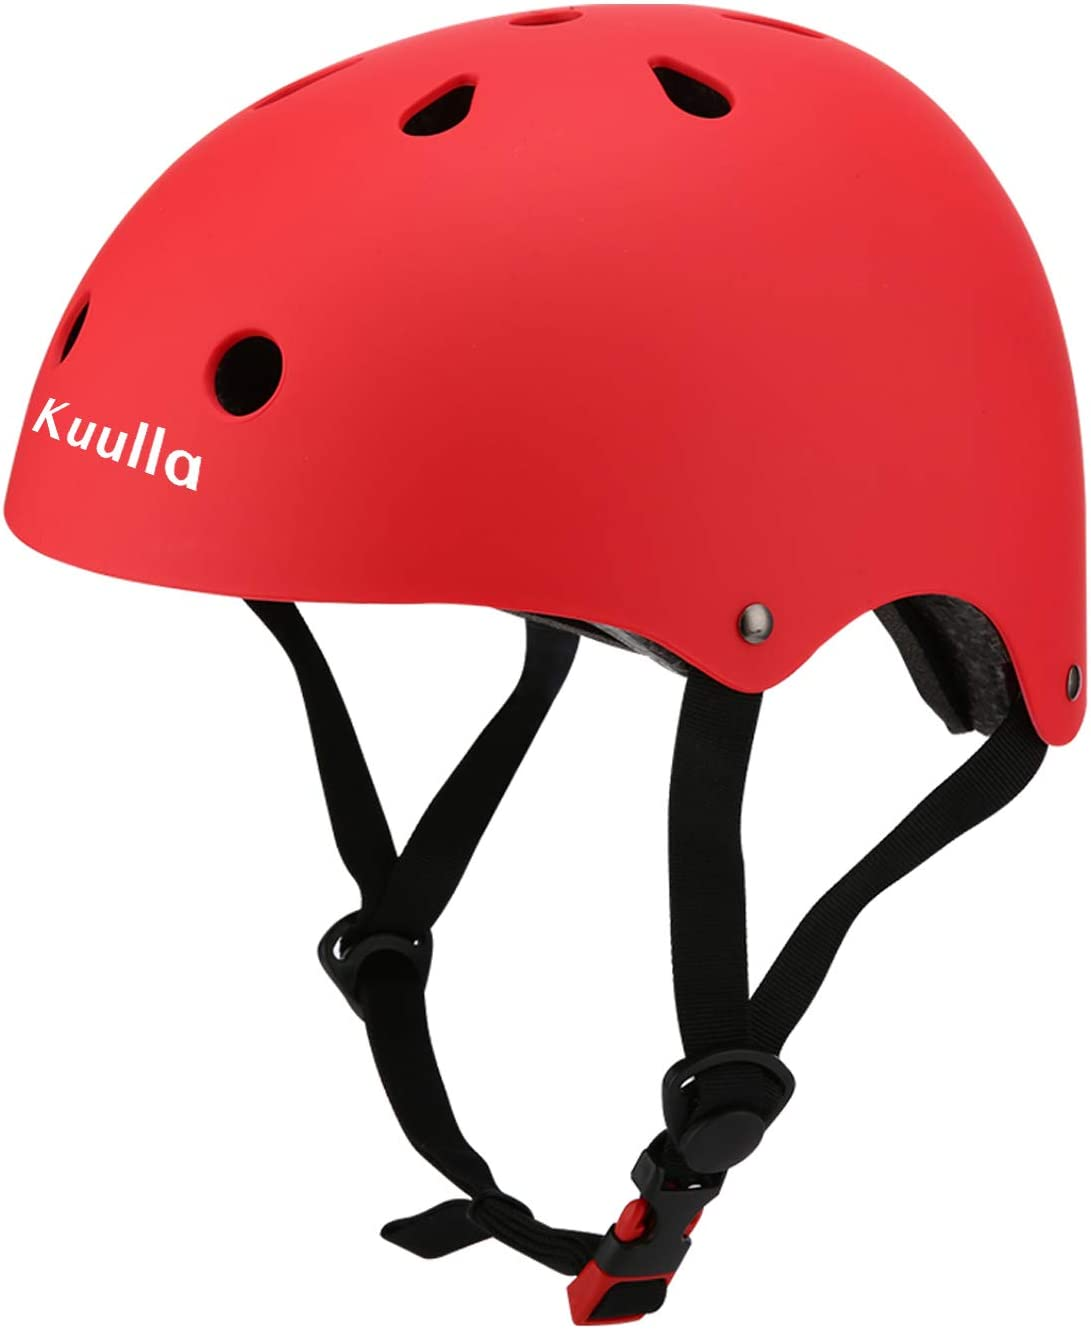 Kuulla Toddler Helmet Kids Bike Helmet Adjustable Kids Helmet Ages 3-8 Years Old Boys Girls 11 Vents Safety Ventilation Design Cycling Skating Scooter Helmet CPSC Certified